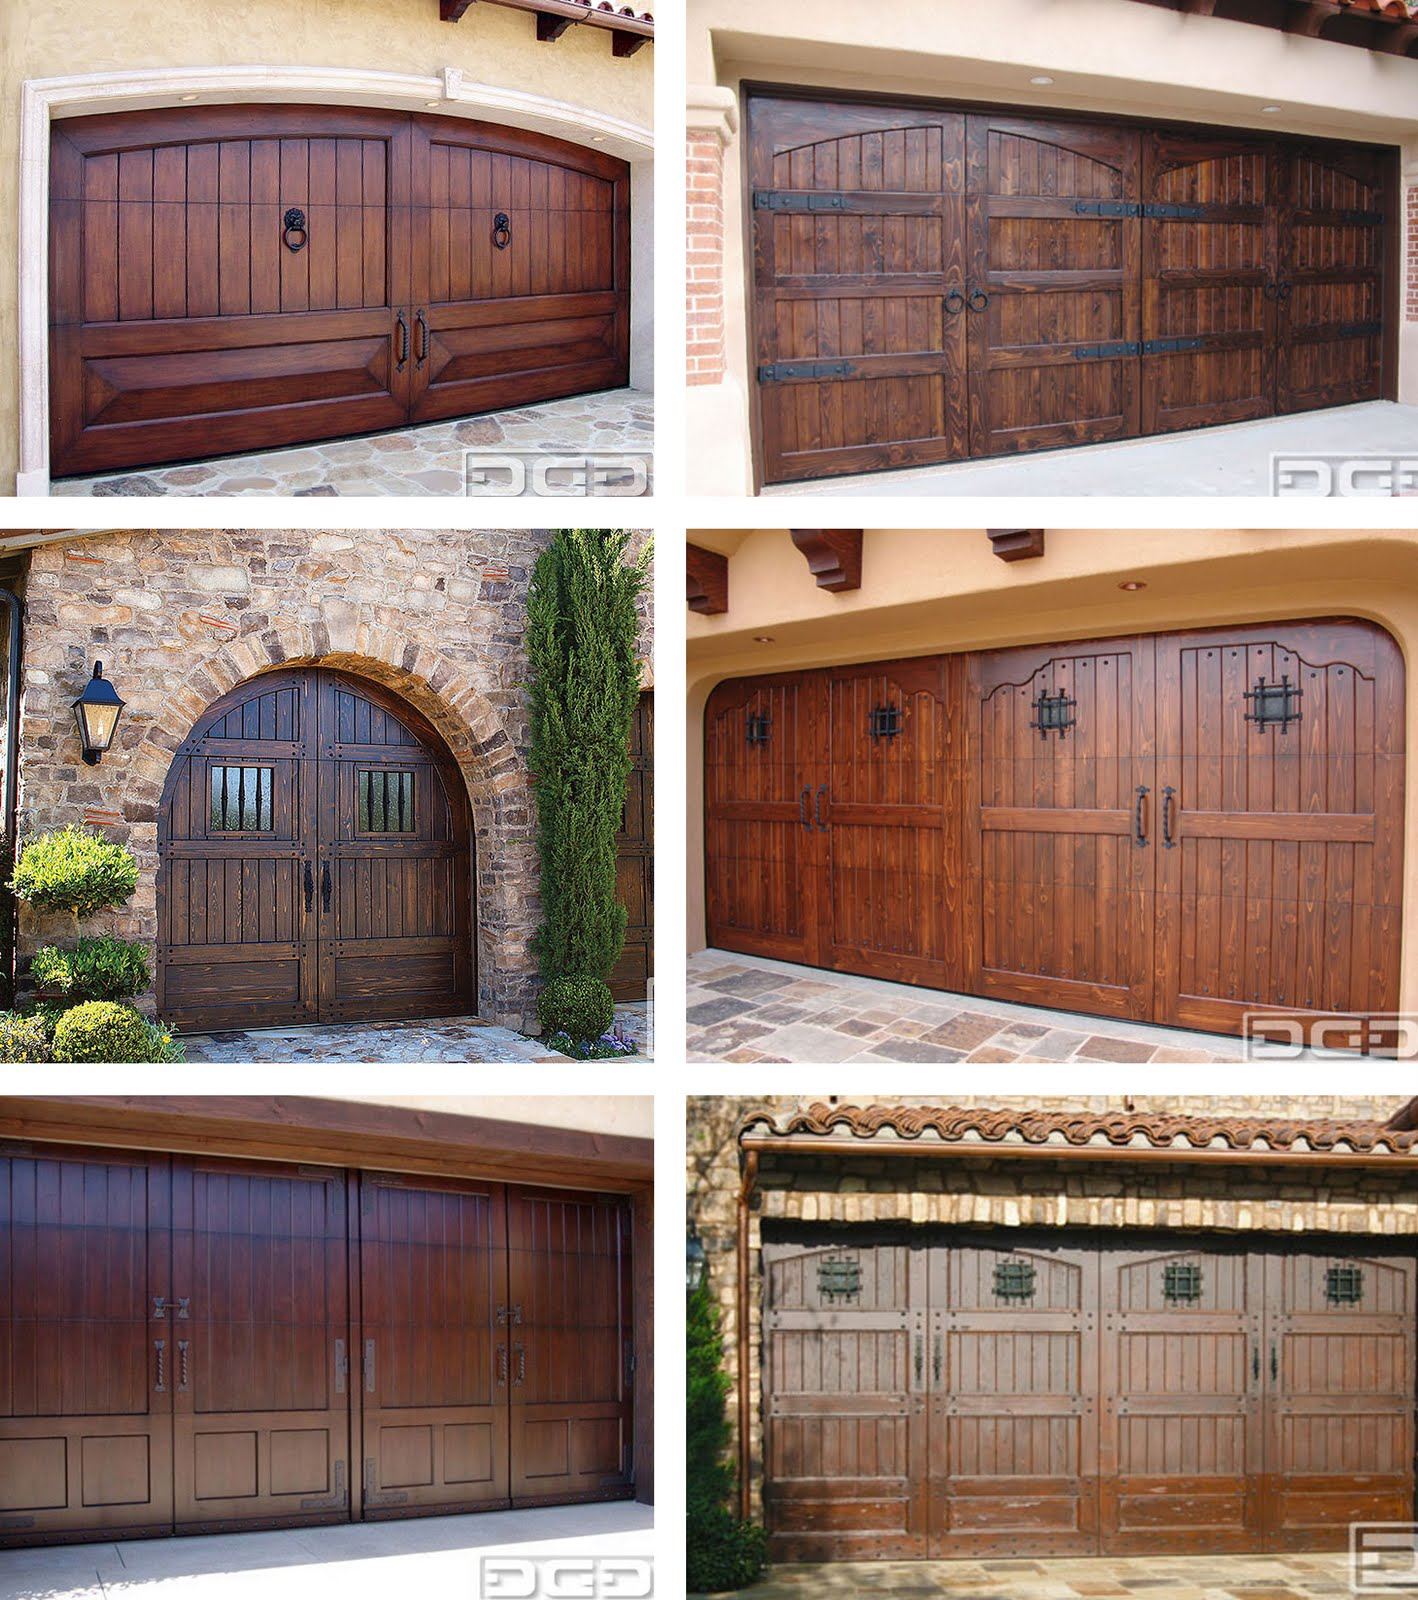 301 moved permanently Garage door faux wood